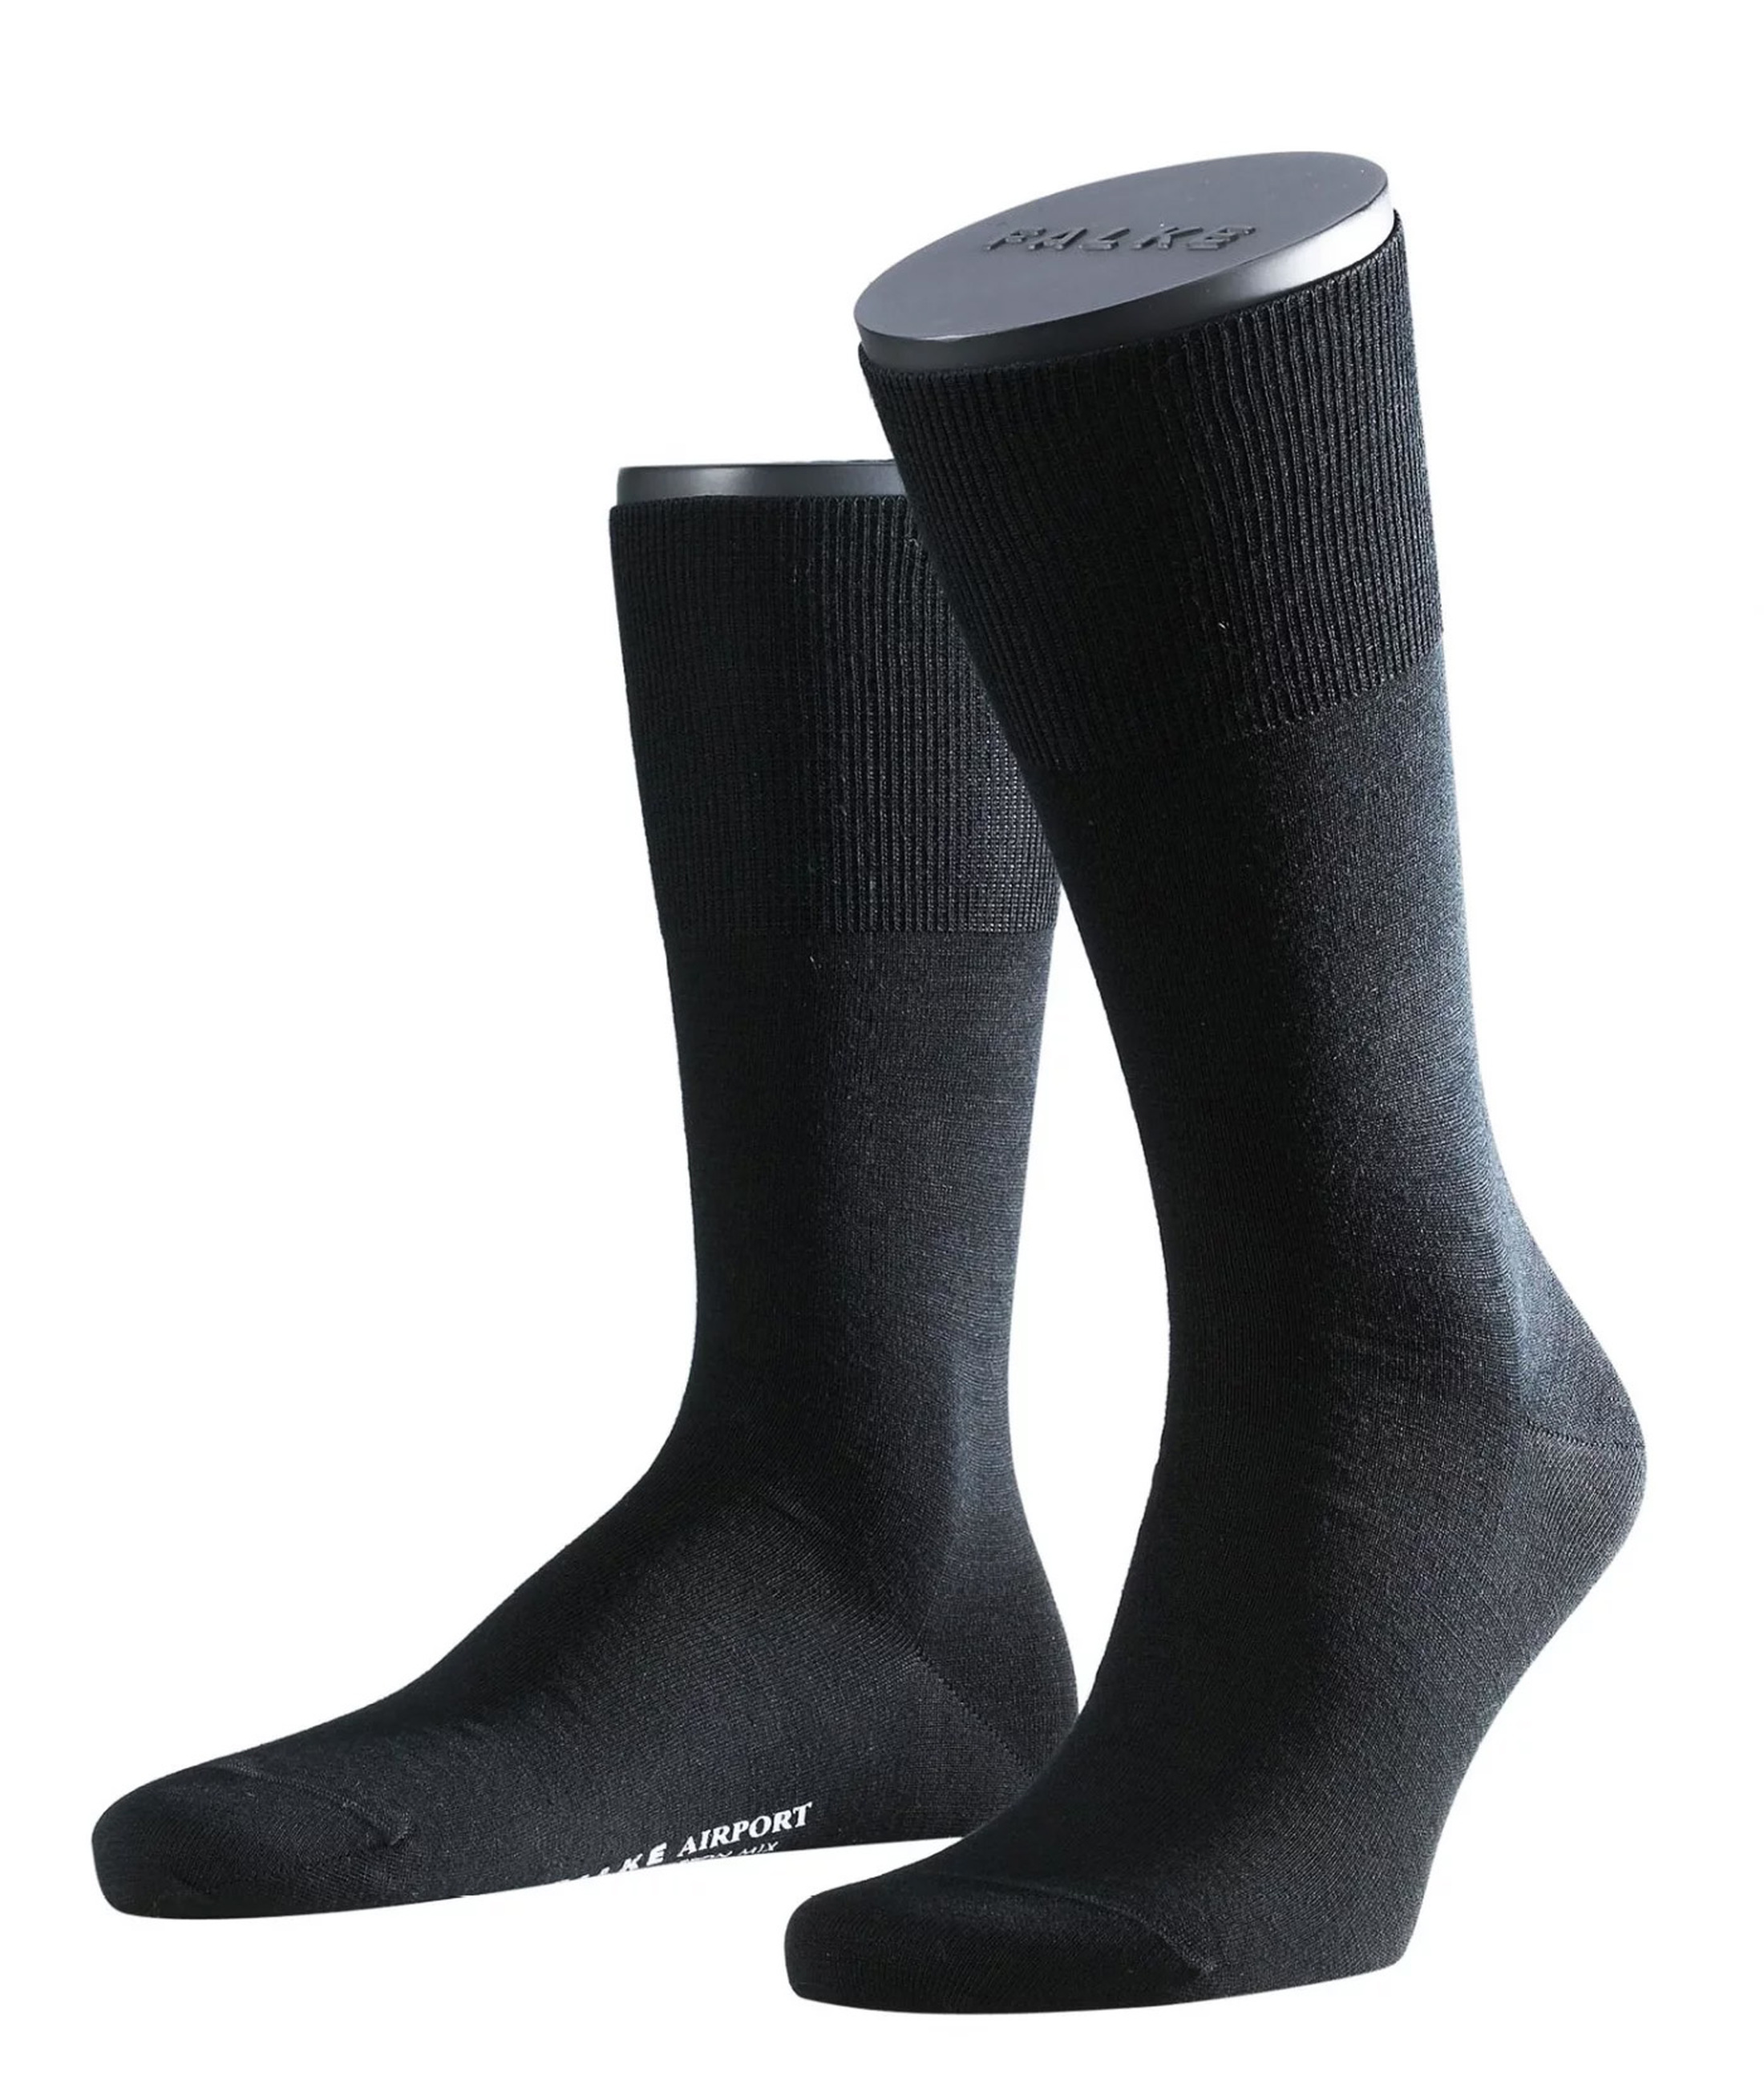 Falke Airport PLUS Socks Black 3000 foto 0